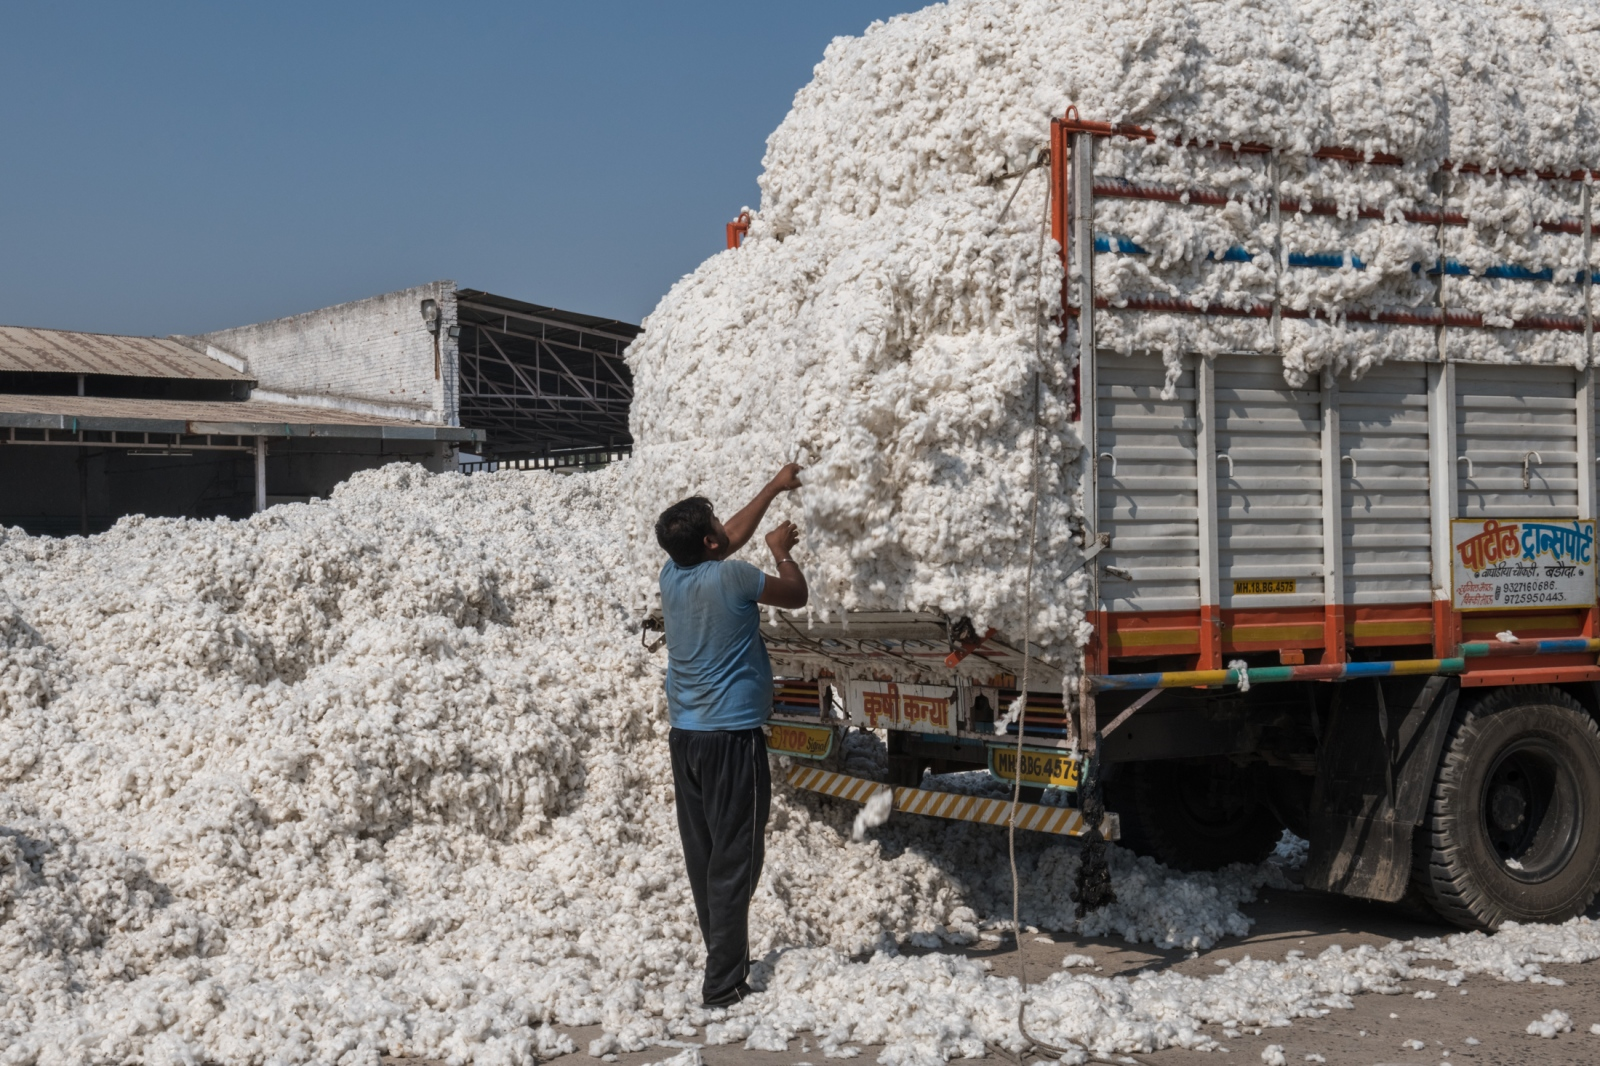 The Radhe Industries cotton factory in Kadi, in the state of Gujarat. Indian cotton growers' costs have been rising, but the prices they are getting for crops have plunged